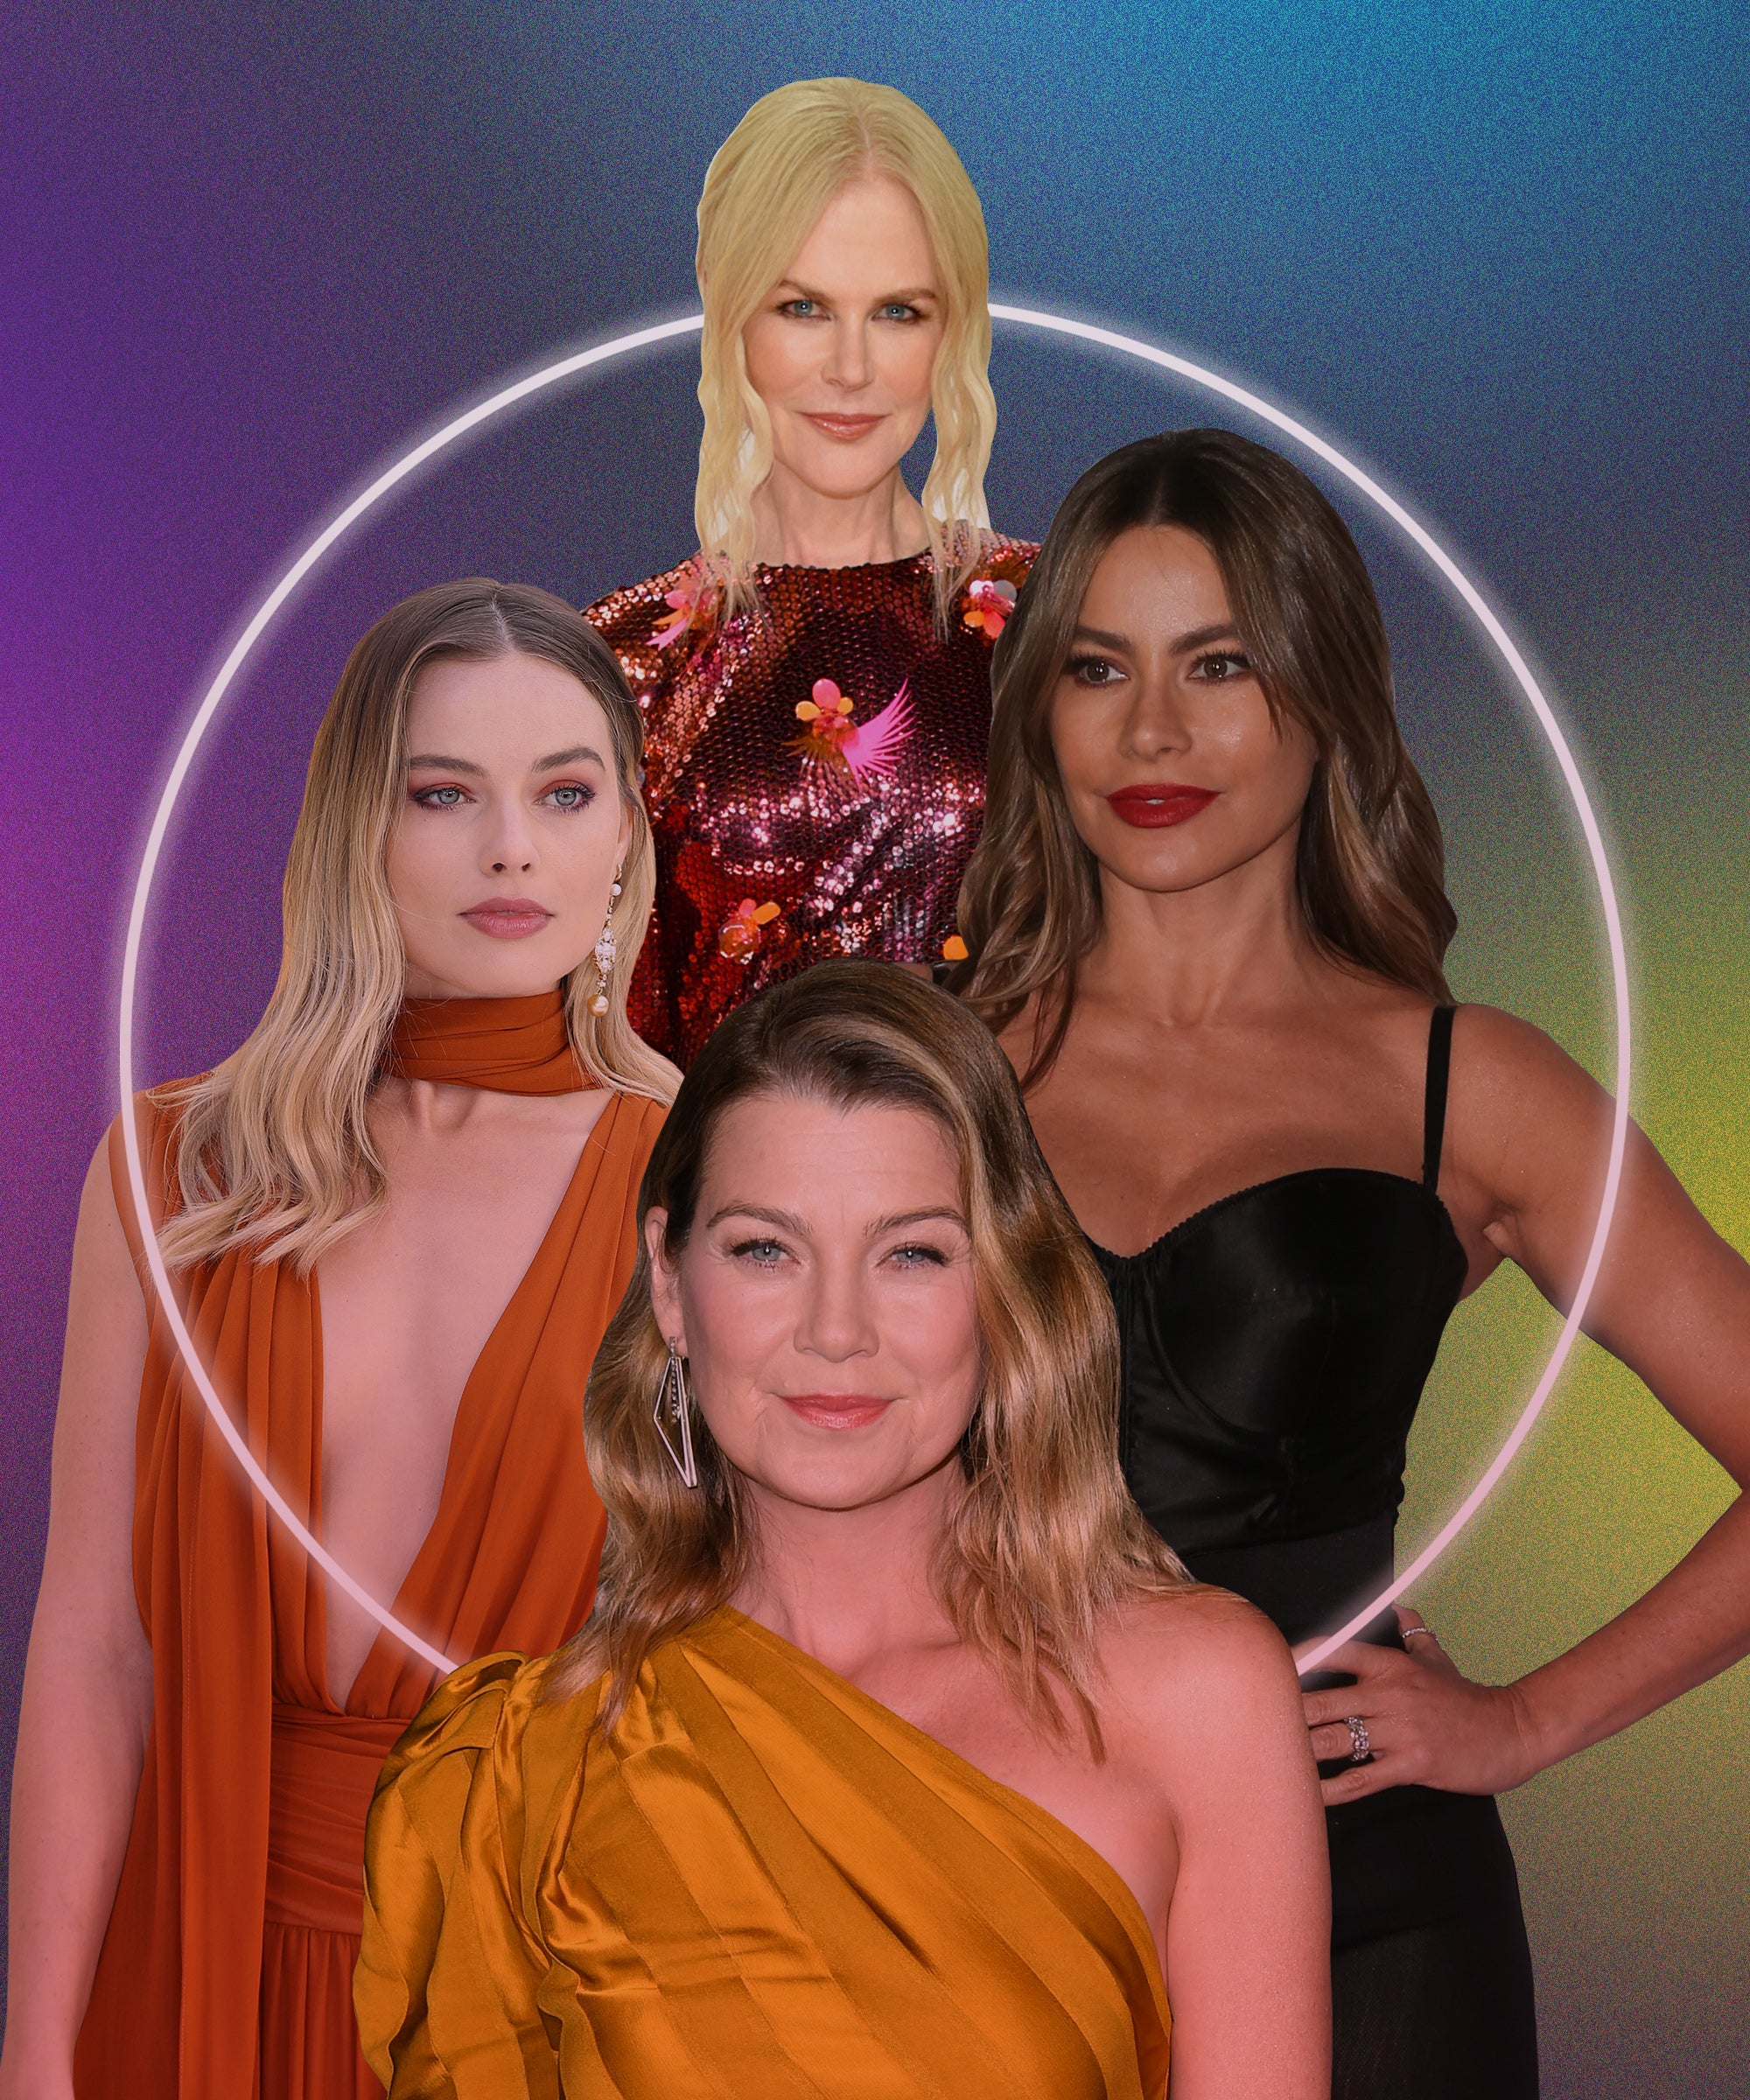 Actresses With The Biggest 2019 Paychecks - Analysis These Actresses Had The Biggest 2019 Paychecks - & There Is A Lot To Unpack Here - 웹